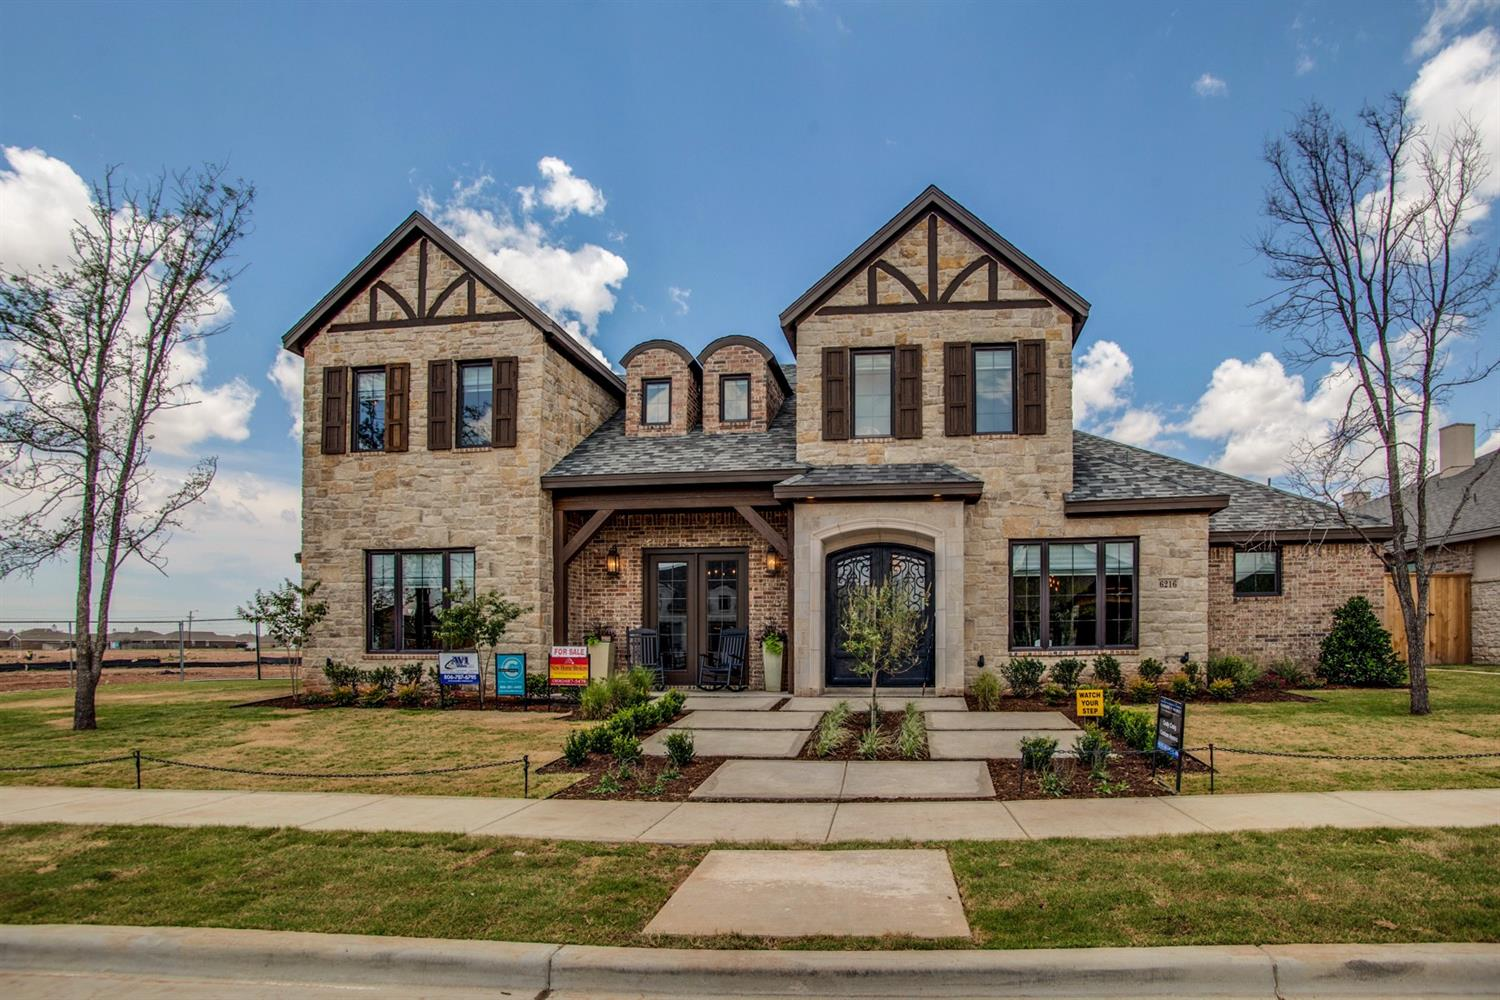 This stunning home in The Trails at Regal Park won Best Interior as a Parade Home in 2016. Beautiful curb appeal as you walk up to this brick and stone home with gorgeous cedar accents.  Walk in to an open concept floor plan with light oak hardwood floors. The perfect amount of rustic touches throughout including repurposed barn wood used for the ceiling and an accent wall. The open living and kitchen area has beautiful natural light with sliding doors that lead into this fabulous backyard.  The oversized island makes the perfect gatherin place.  This home has the space you need for a family with four bedrooms, three bathrooms, a formal dining room, study and an upstairs bonus area that would make a great game or play room.  Complete with a mud room, safe room, big covered patio with built-in grill, garden area in corner of yard, and lots of entertaining space! Welcome home!